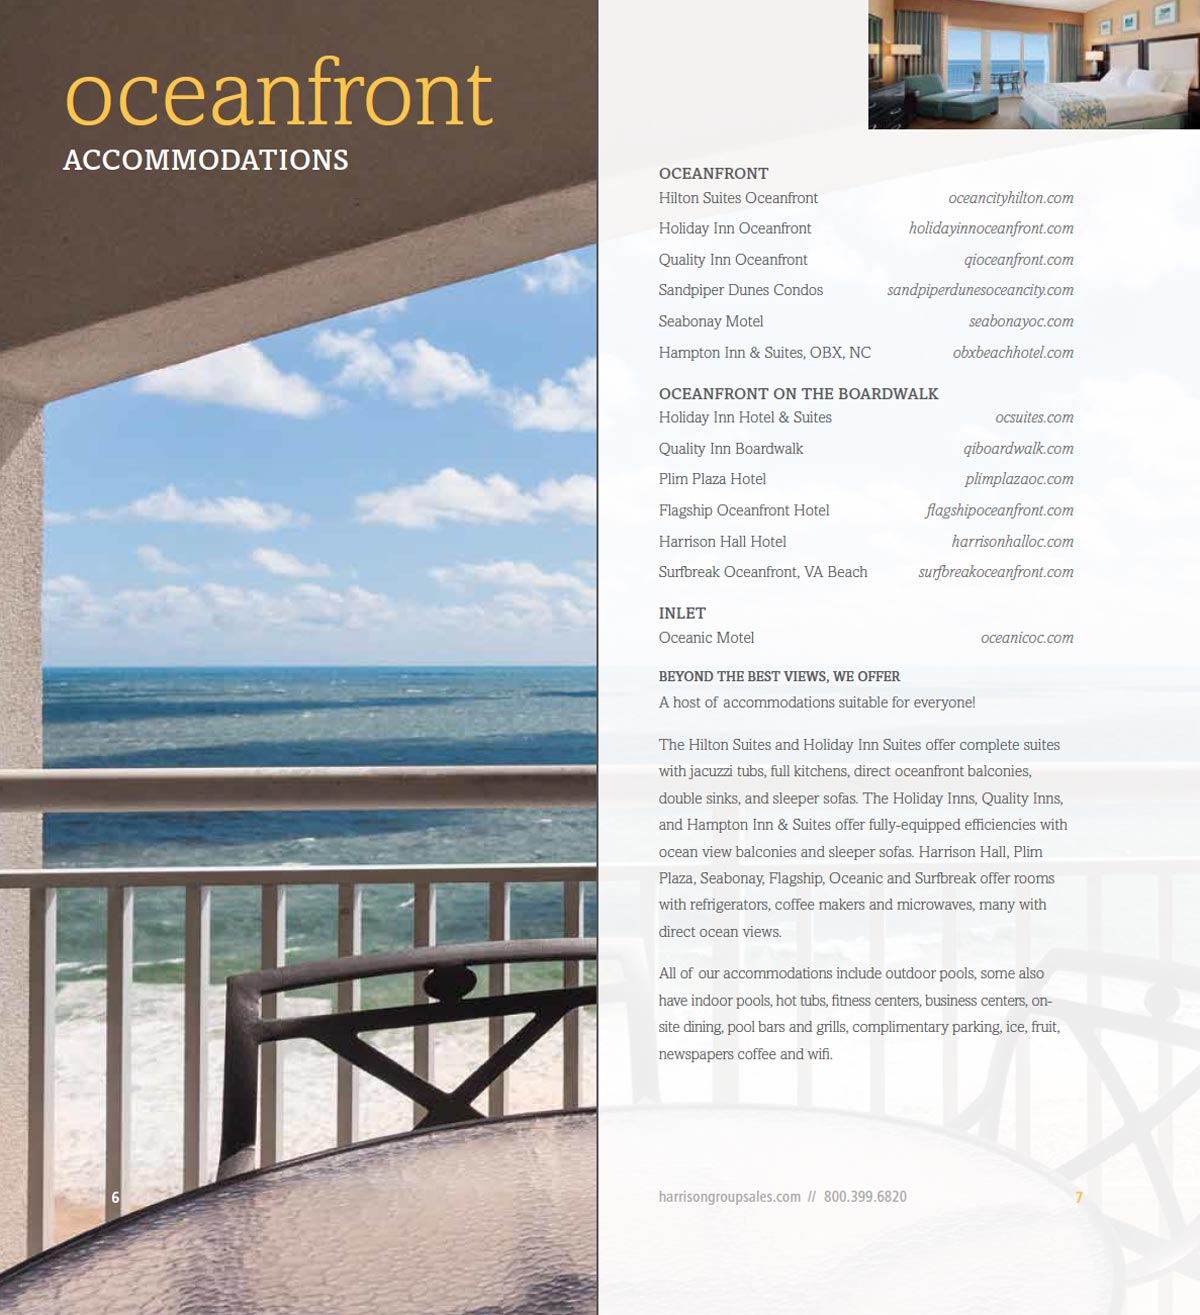 A list of our Oceanfront acoommodations and amenities